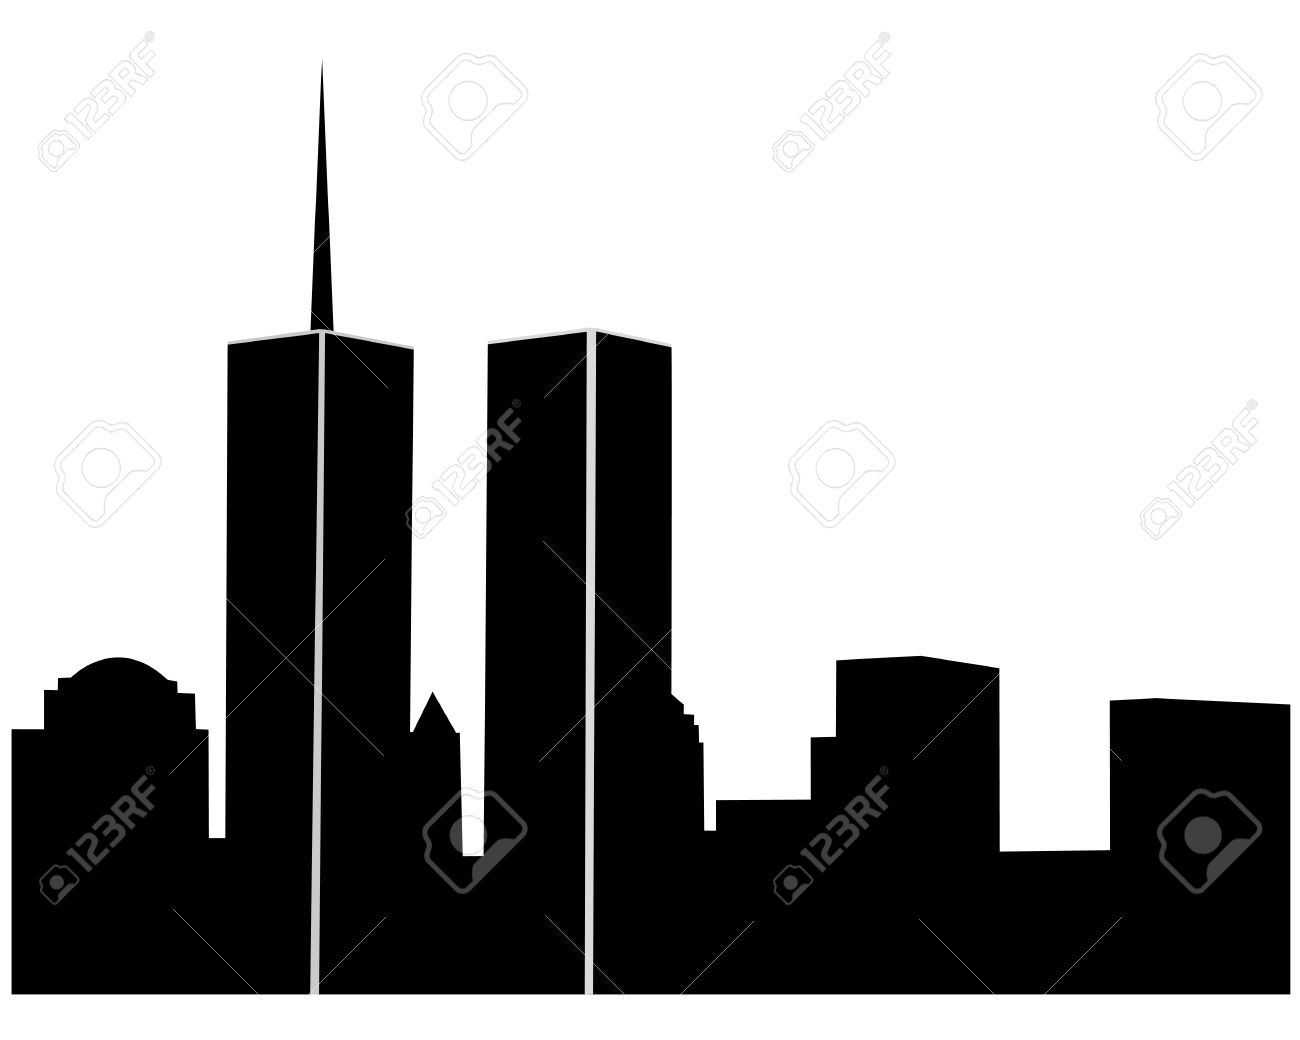 twin towers on a white background royalty free cliparts vectors rh 123rf com twin towers clip art free Twin Towers Silhouette